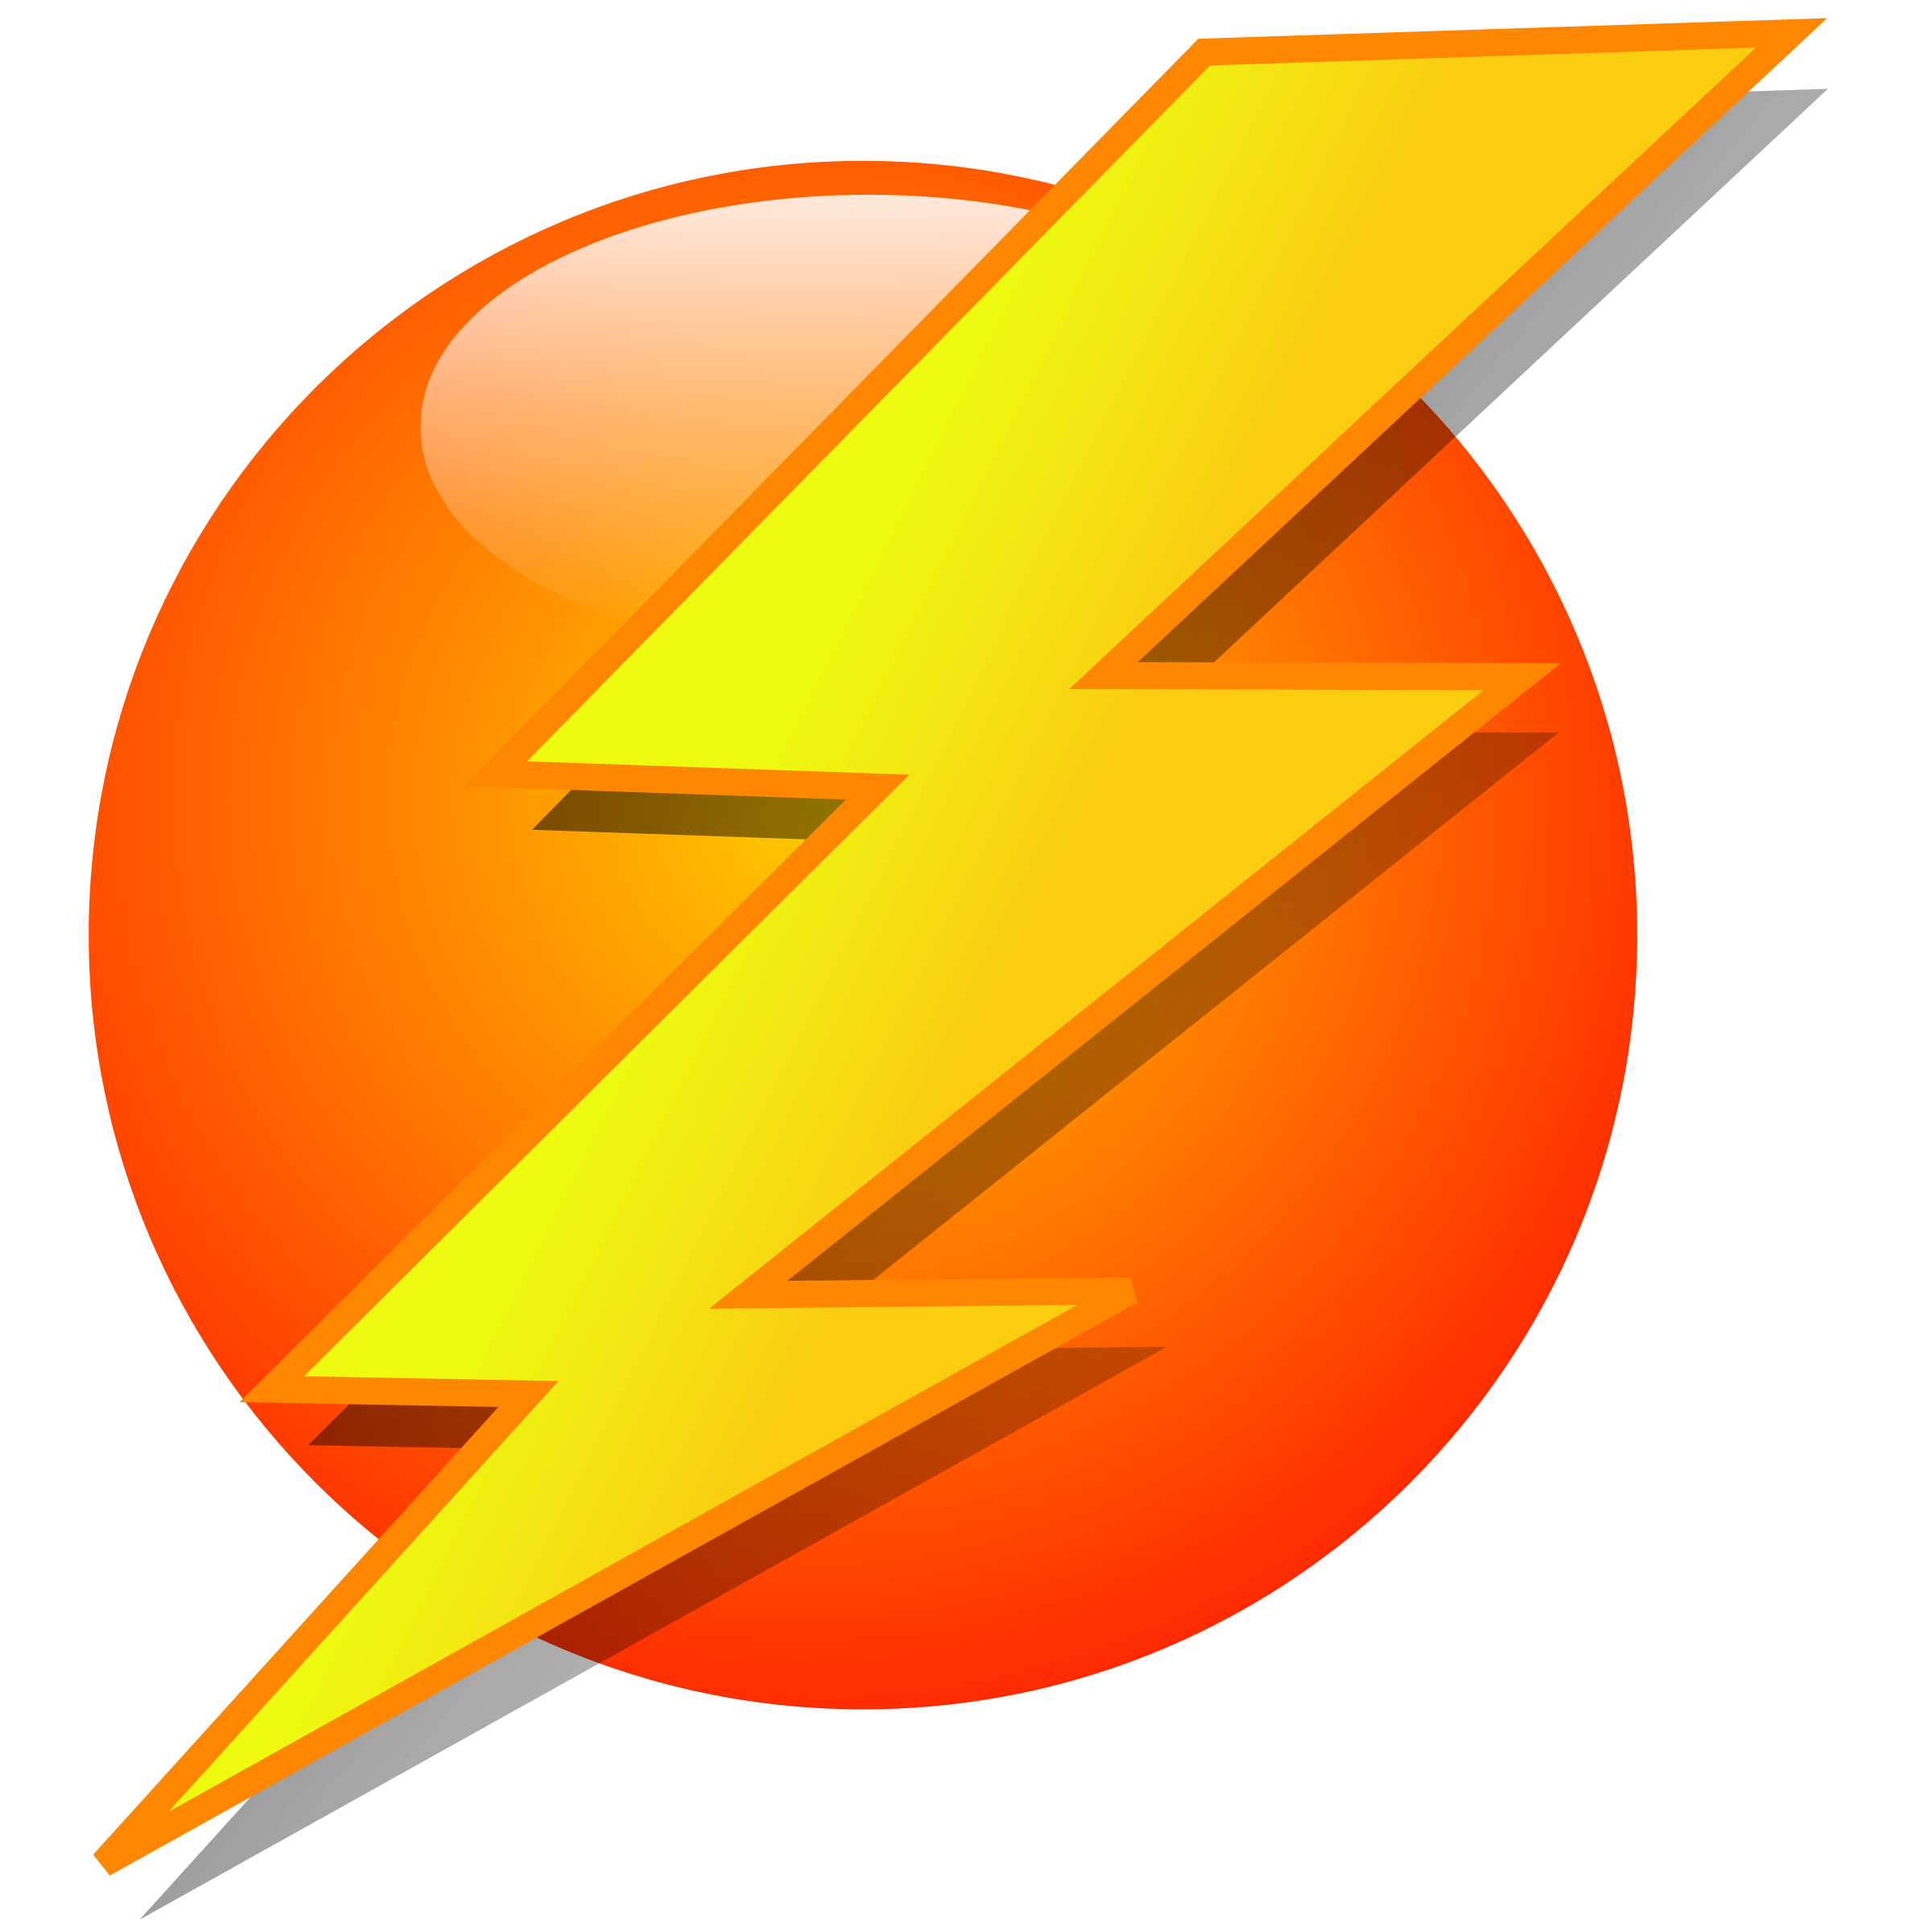 2400x2400 Black Lightning Bolt Id 16533 Clipart Pictures